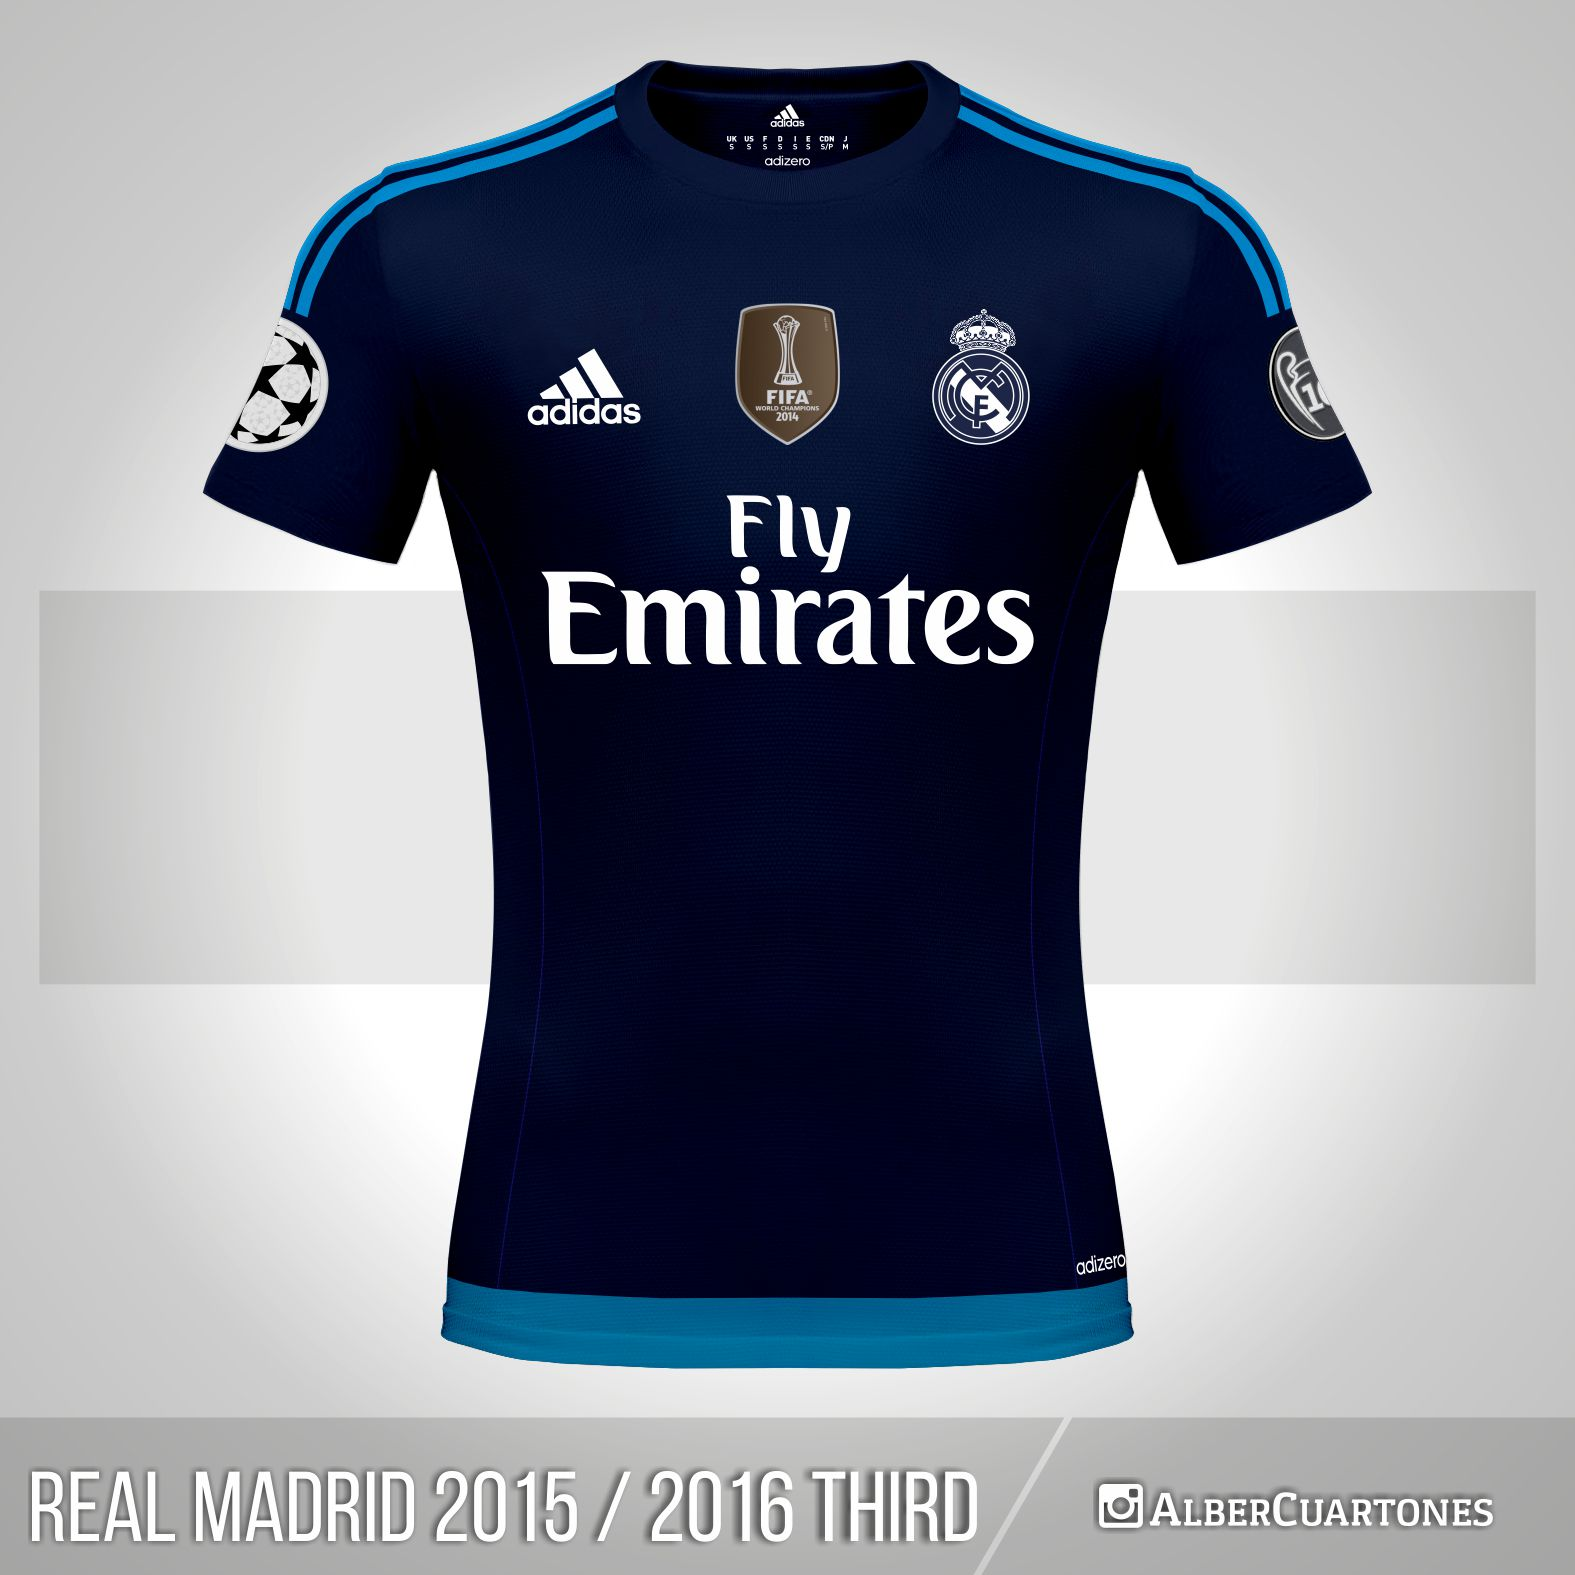 88d893e3a Real Madrid 2015   2016 Third Shirt (according to leaks)